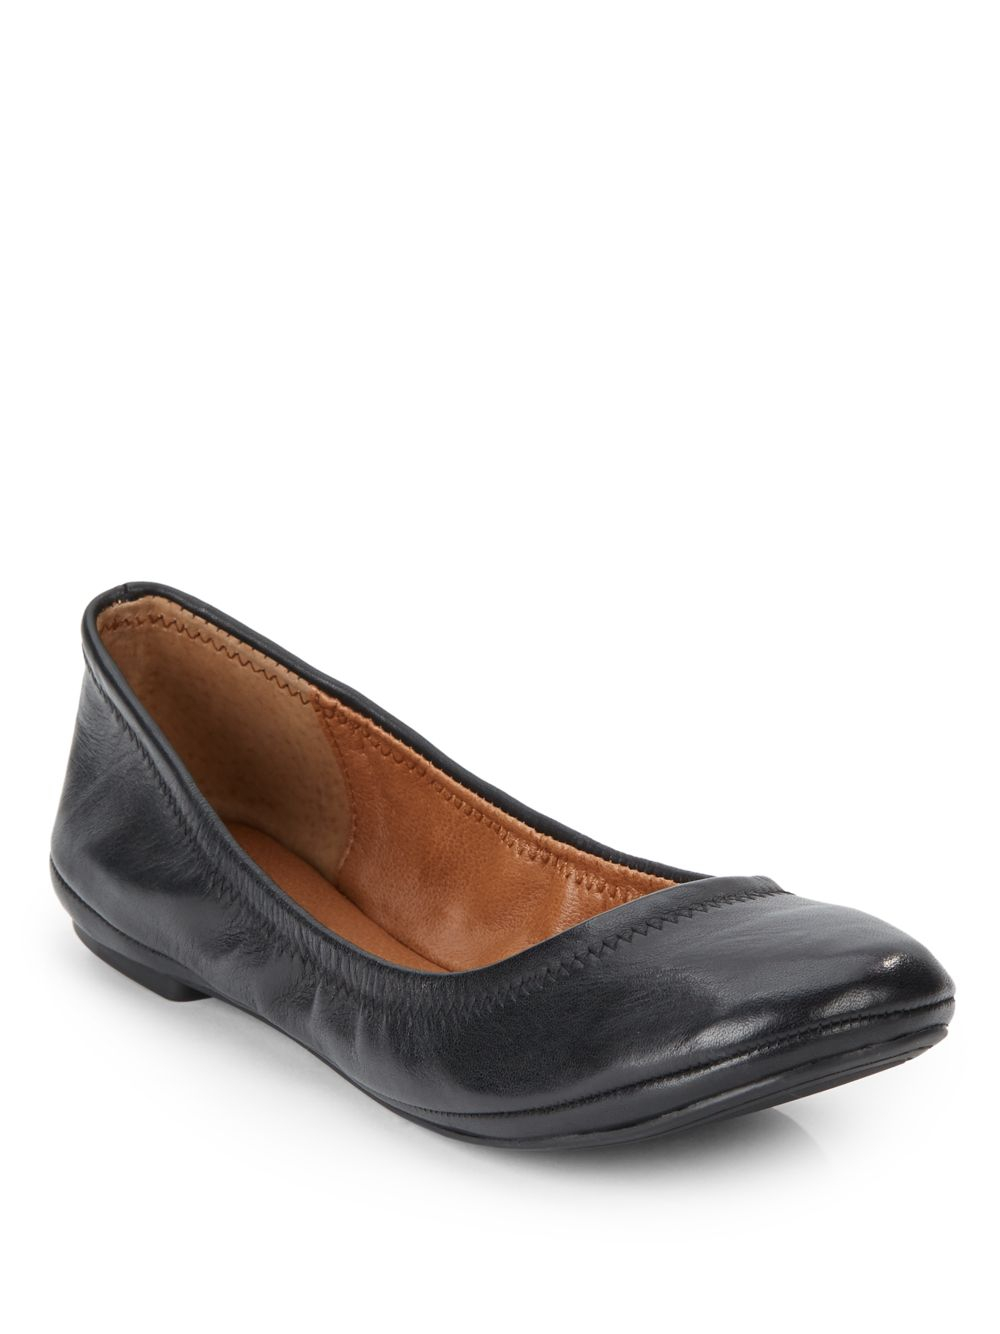 Saks Brand Mens Shoes